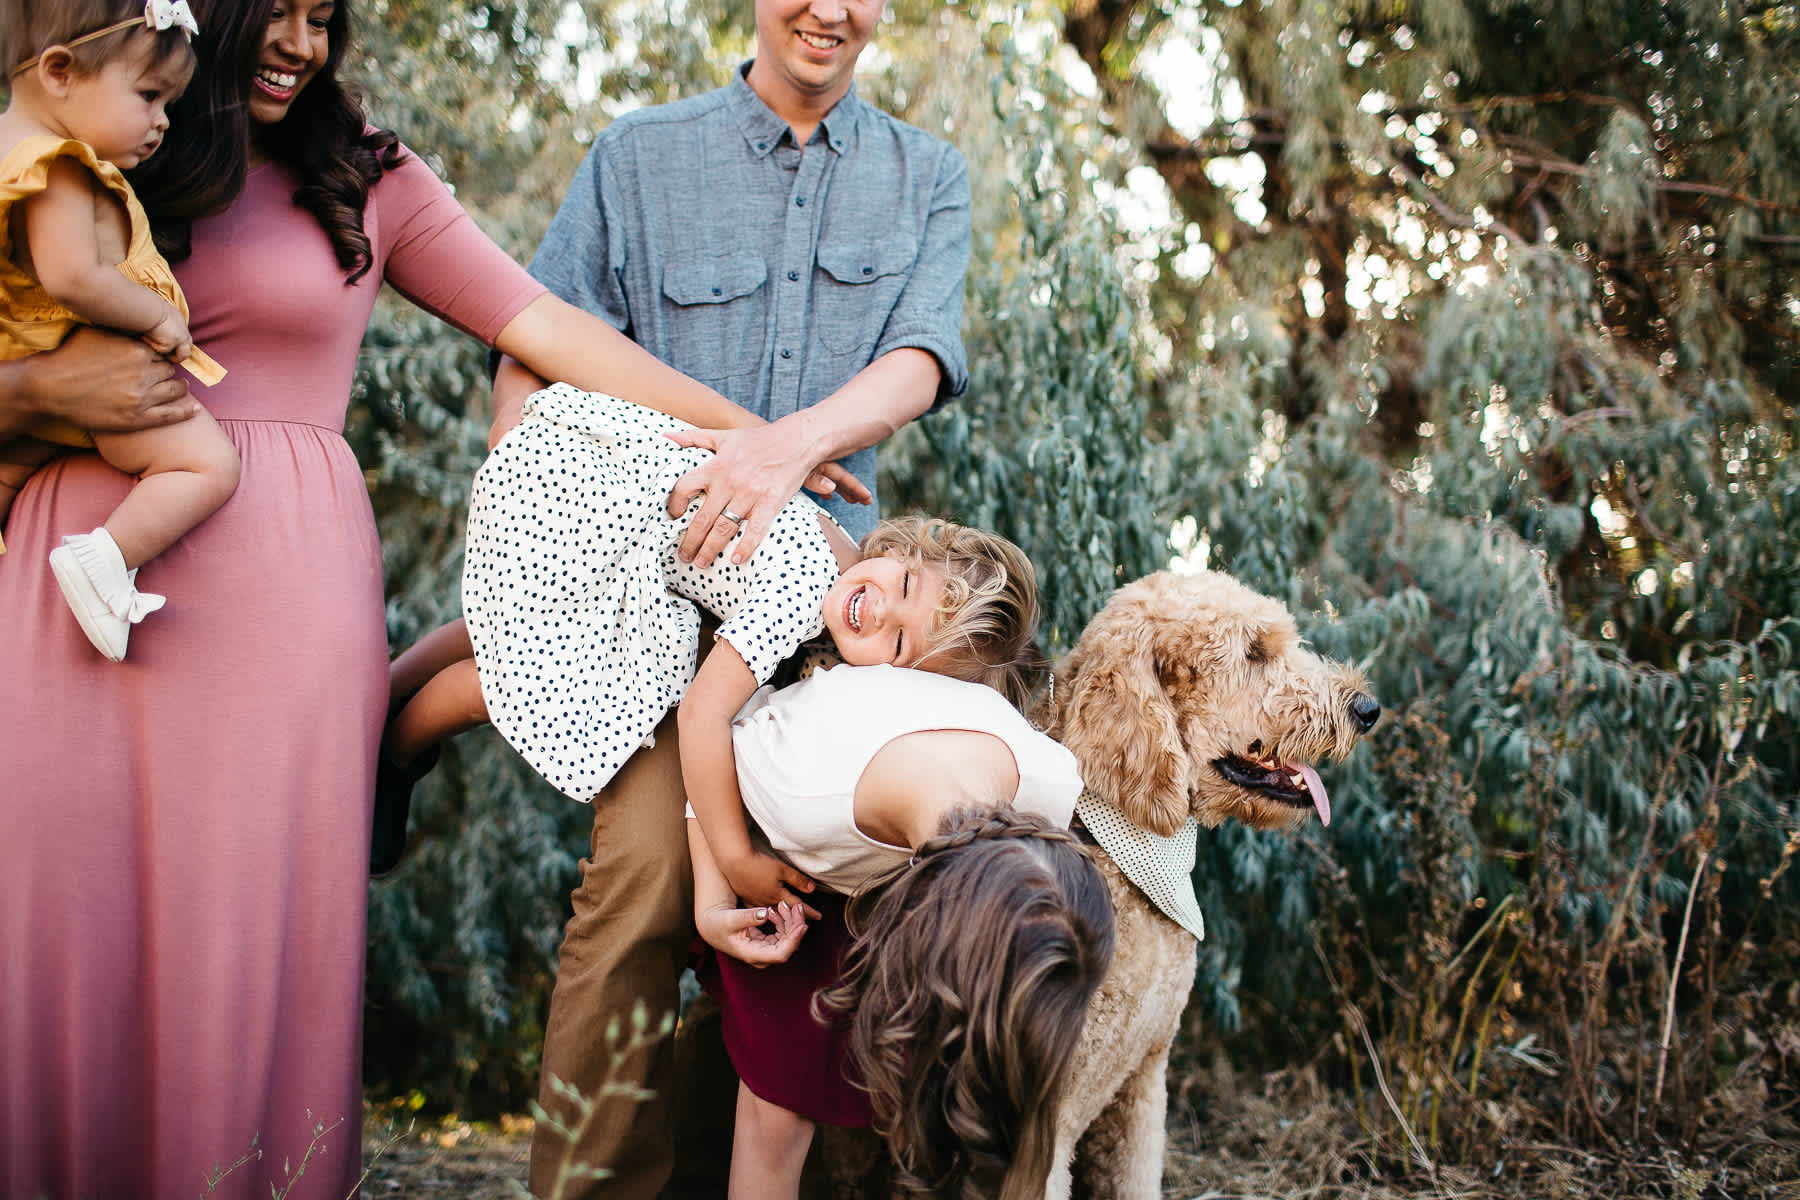 salt-lake-city-family-lifestyle-phtpographer-golden-field-2